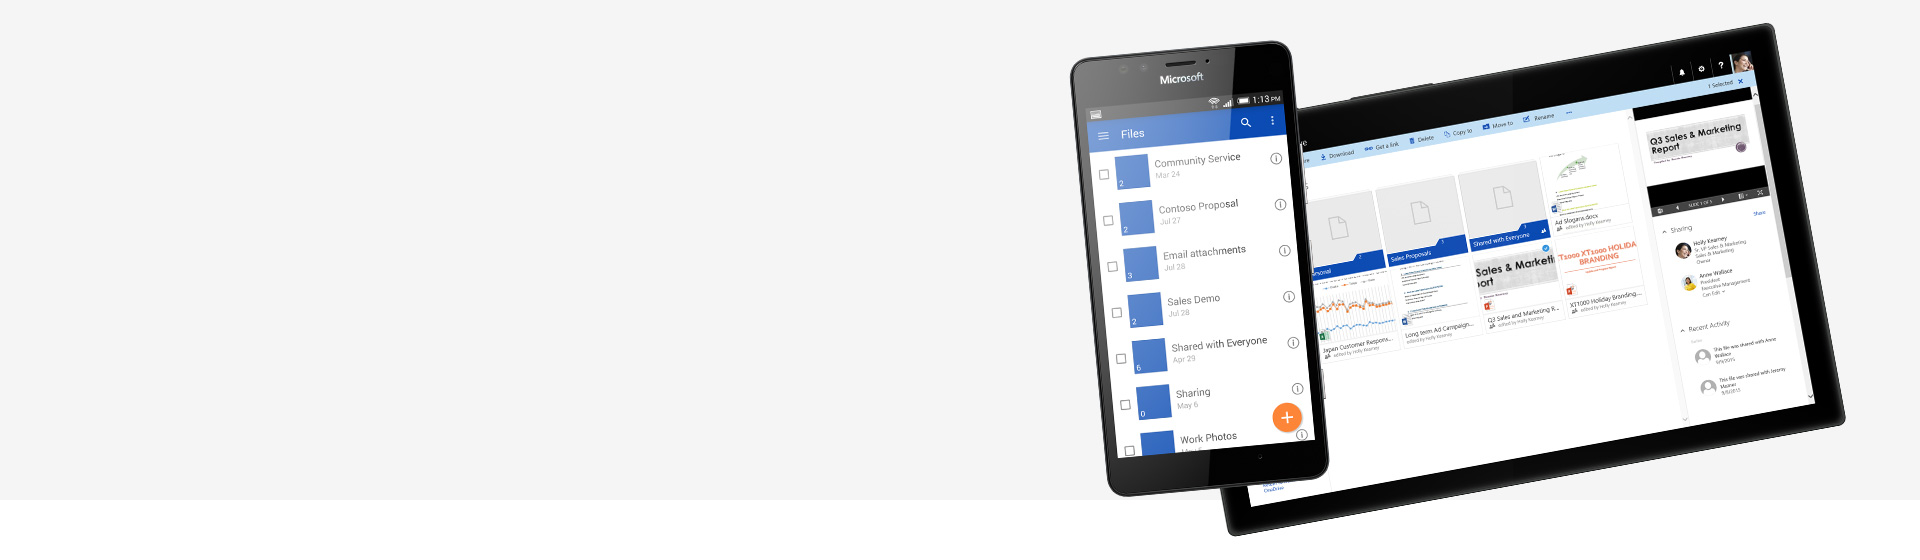 A tablet and a phone displaying files and folders in OneDrive for Business.